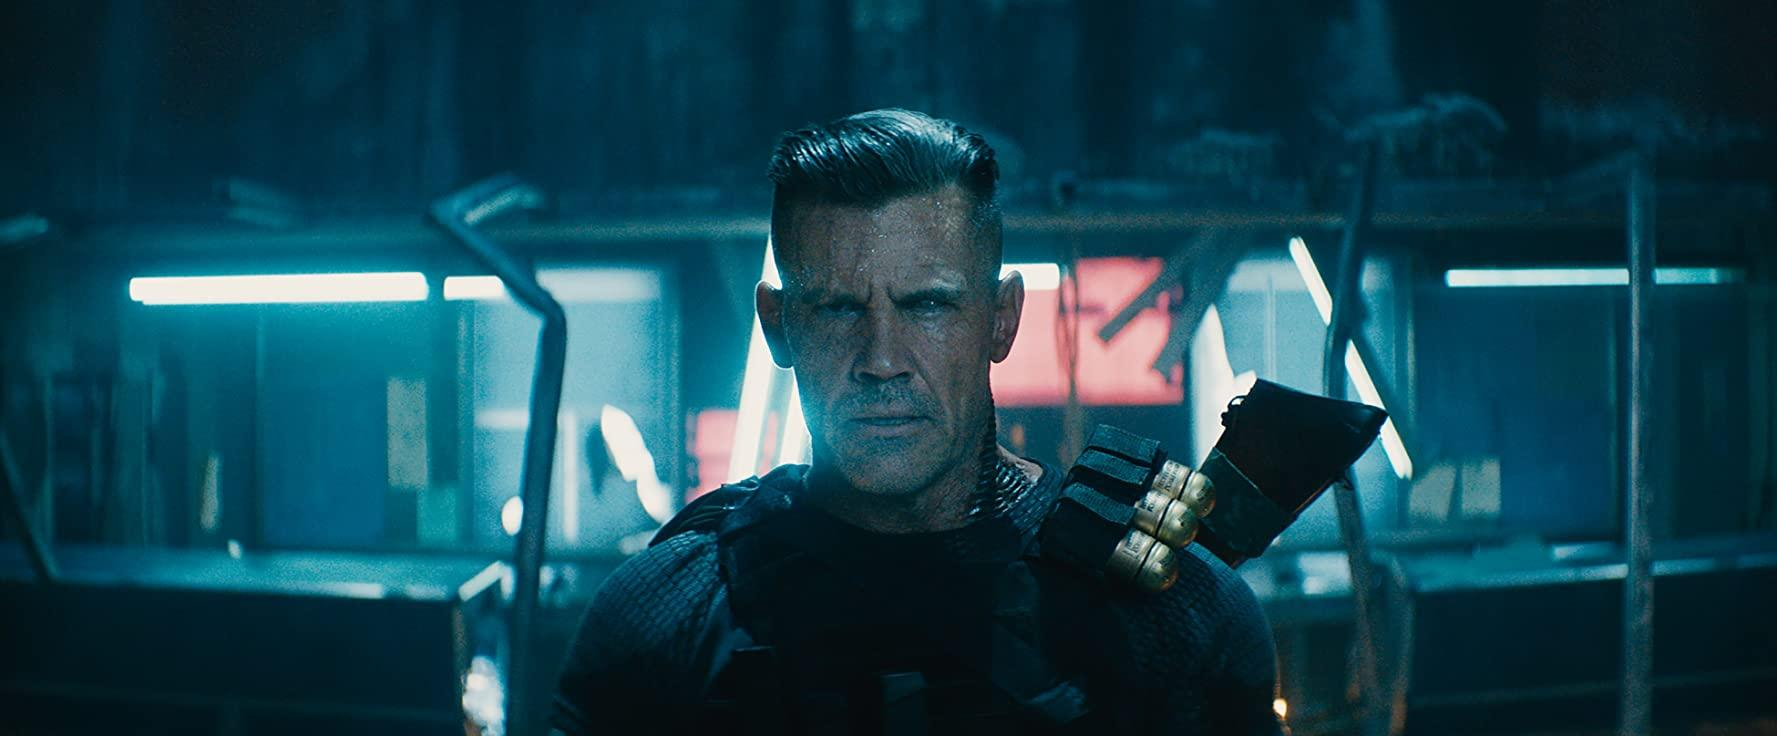 Josh Brolin wants to return as Cable in 'Deadpool' sequel 'sooner than later'